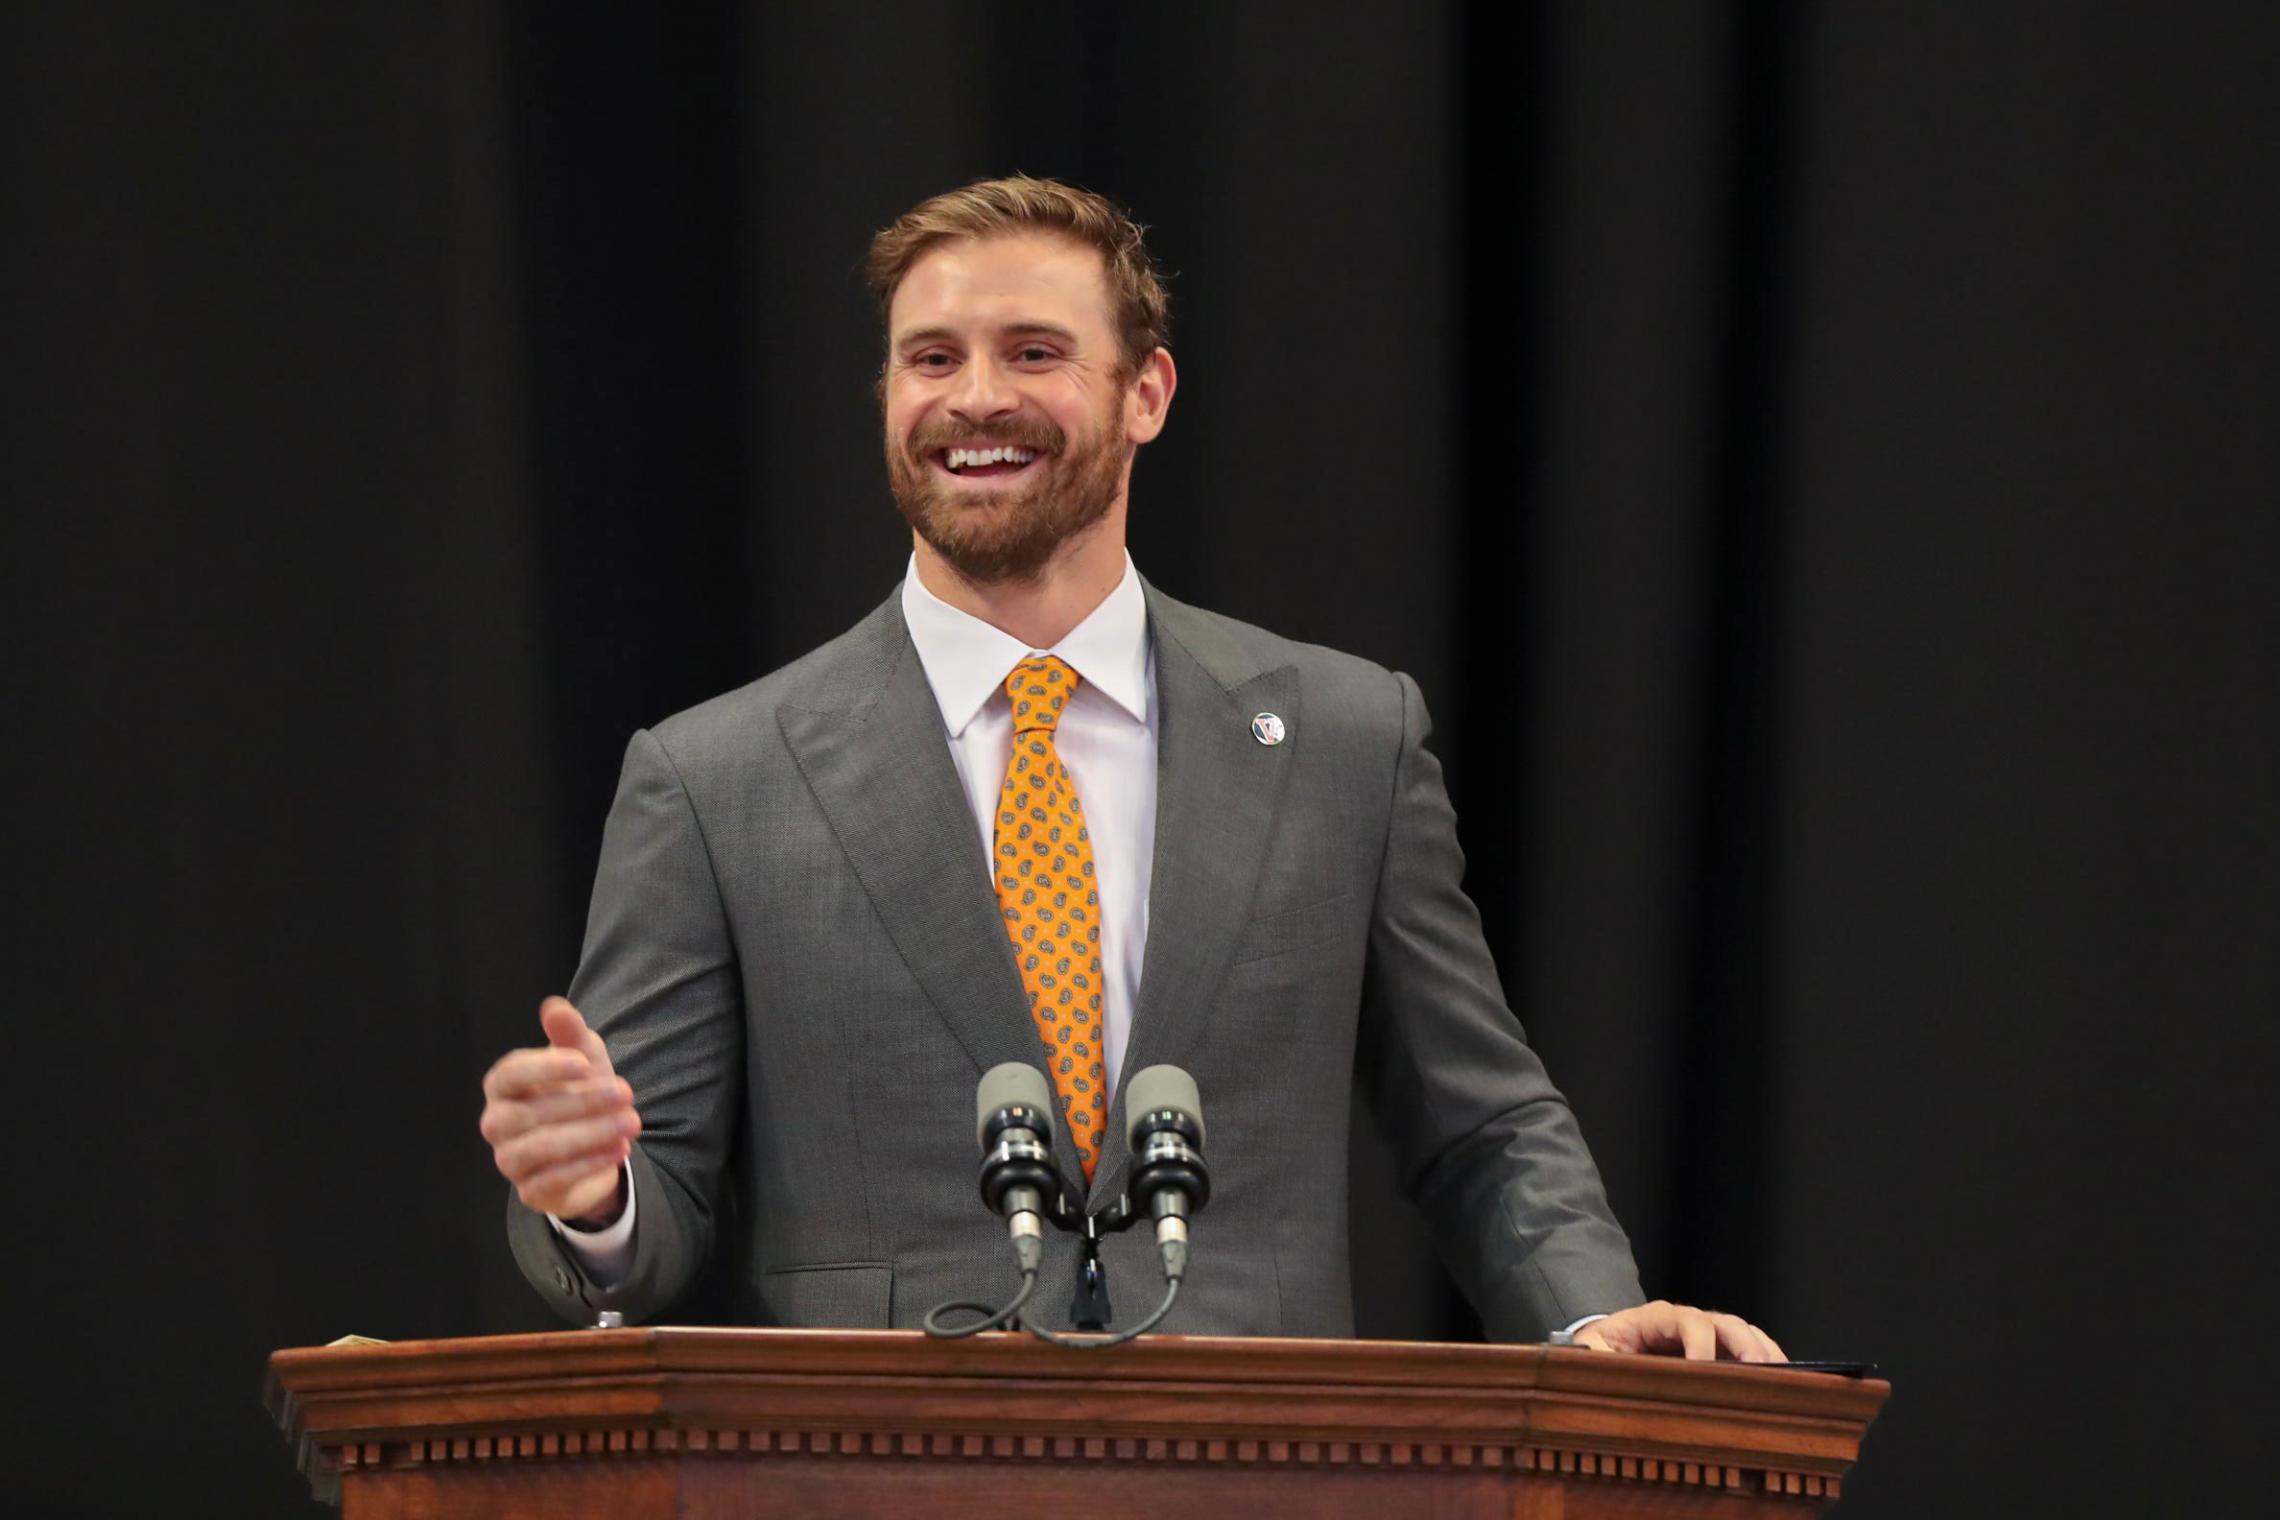 Retired NFL player Chris Long, pictured here delivering UVA's valedictory keynote in 2018, has extended his philanthropic efforts all over the world. (Photo by Dan Addison, University Communications)